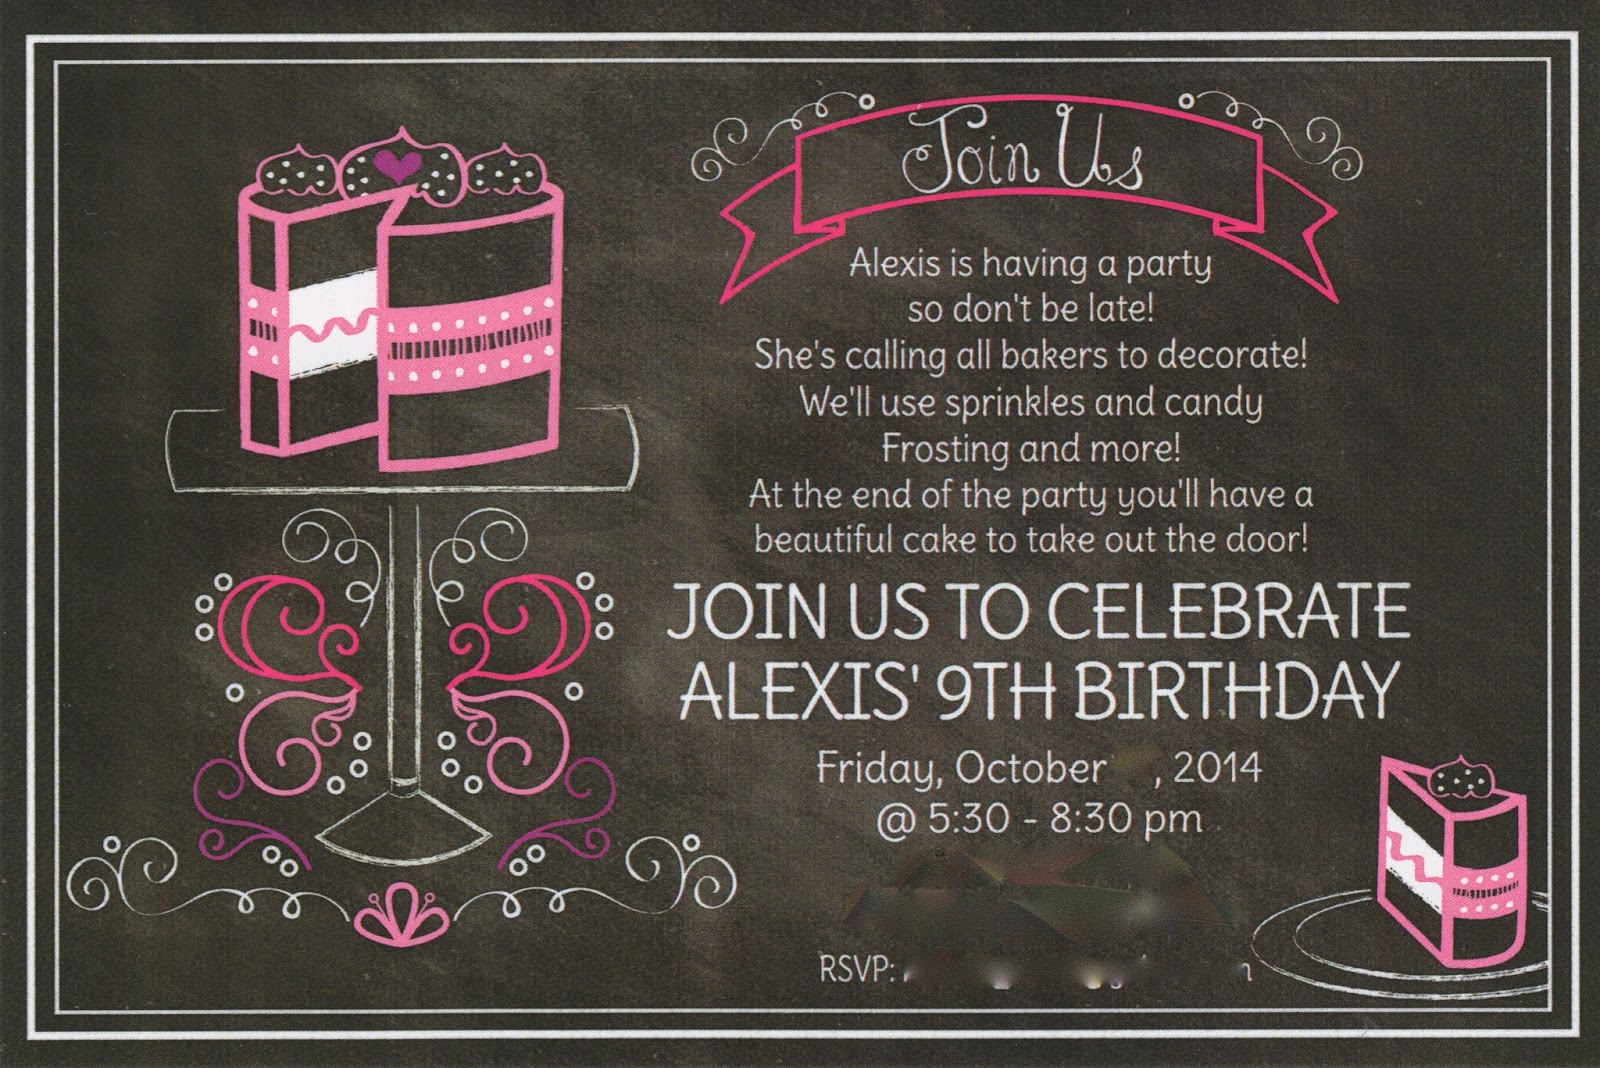 Cake Decorating Birthday Party Invitations : It s Fun 4 Me!: Cake Decorating 9th Birthday Party